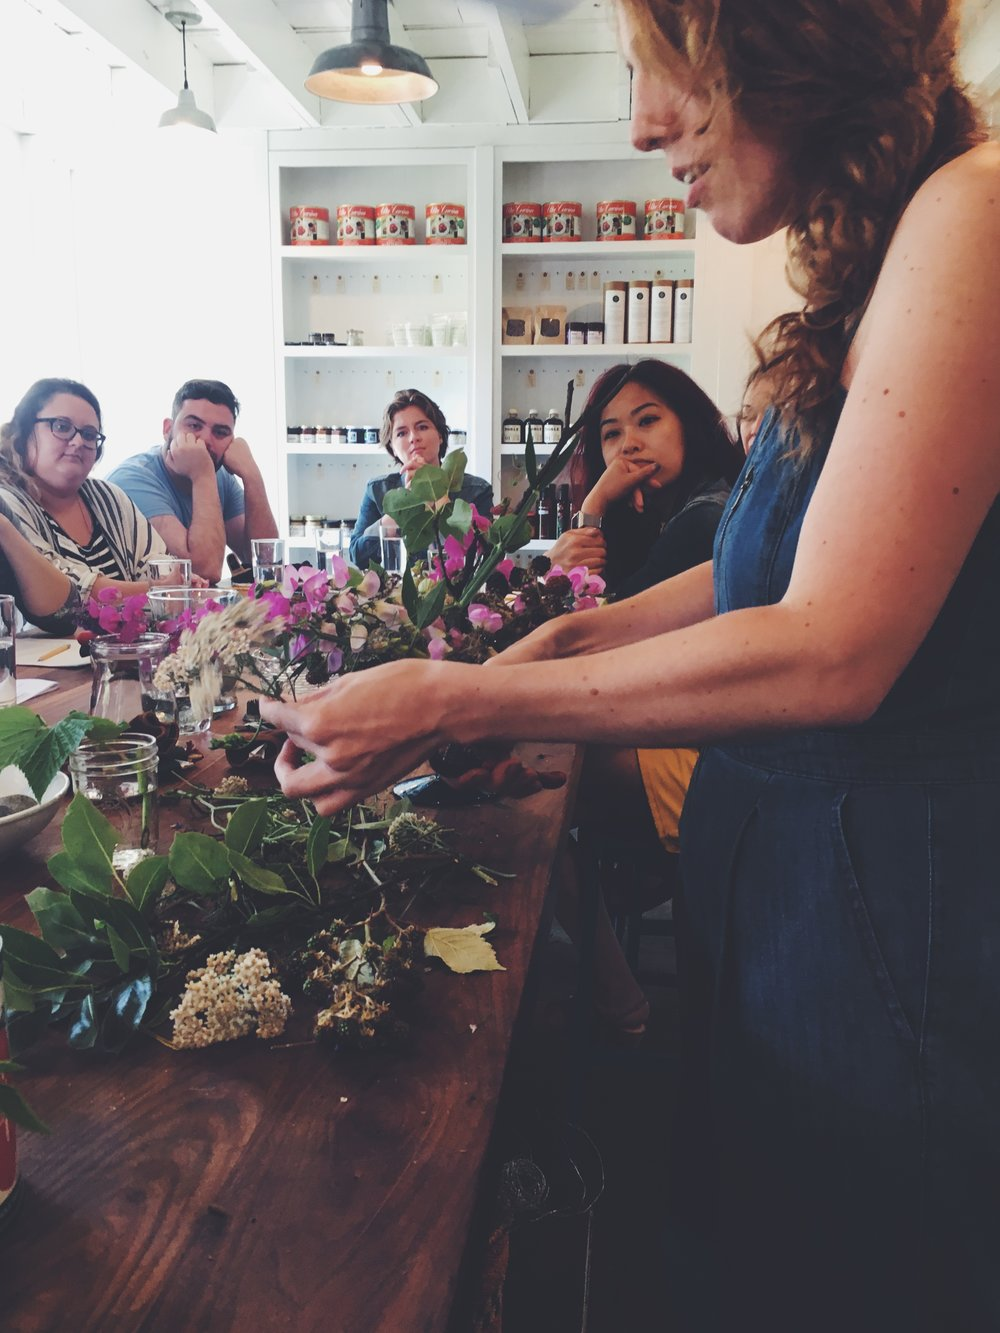 Renée showing us how to process wild flowers.